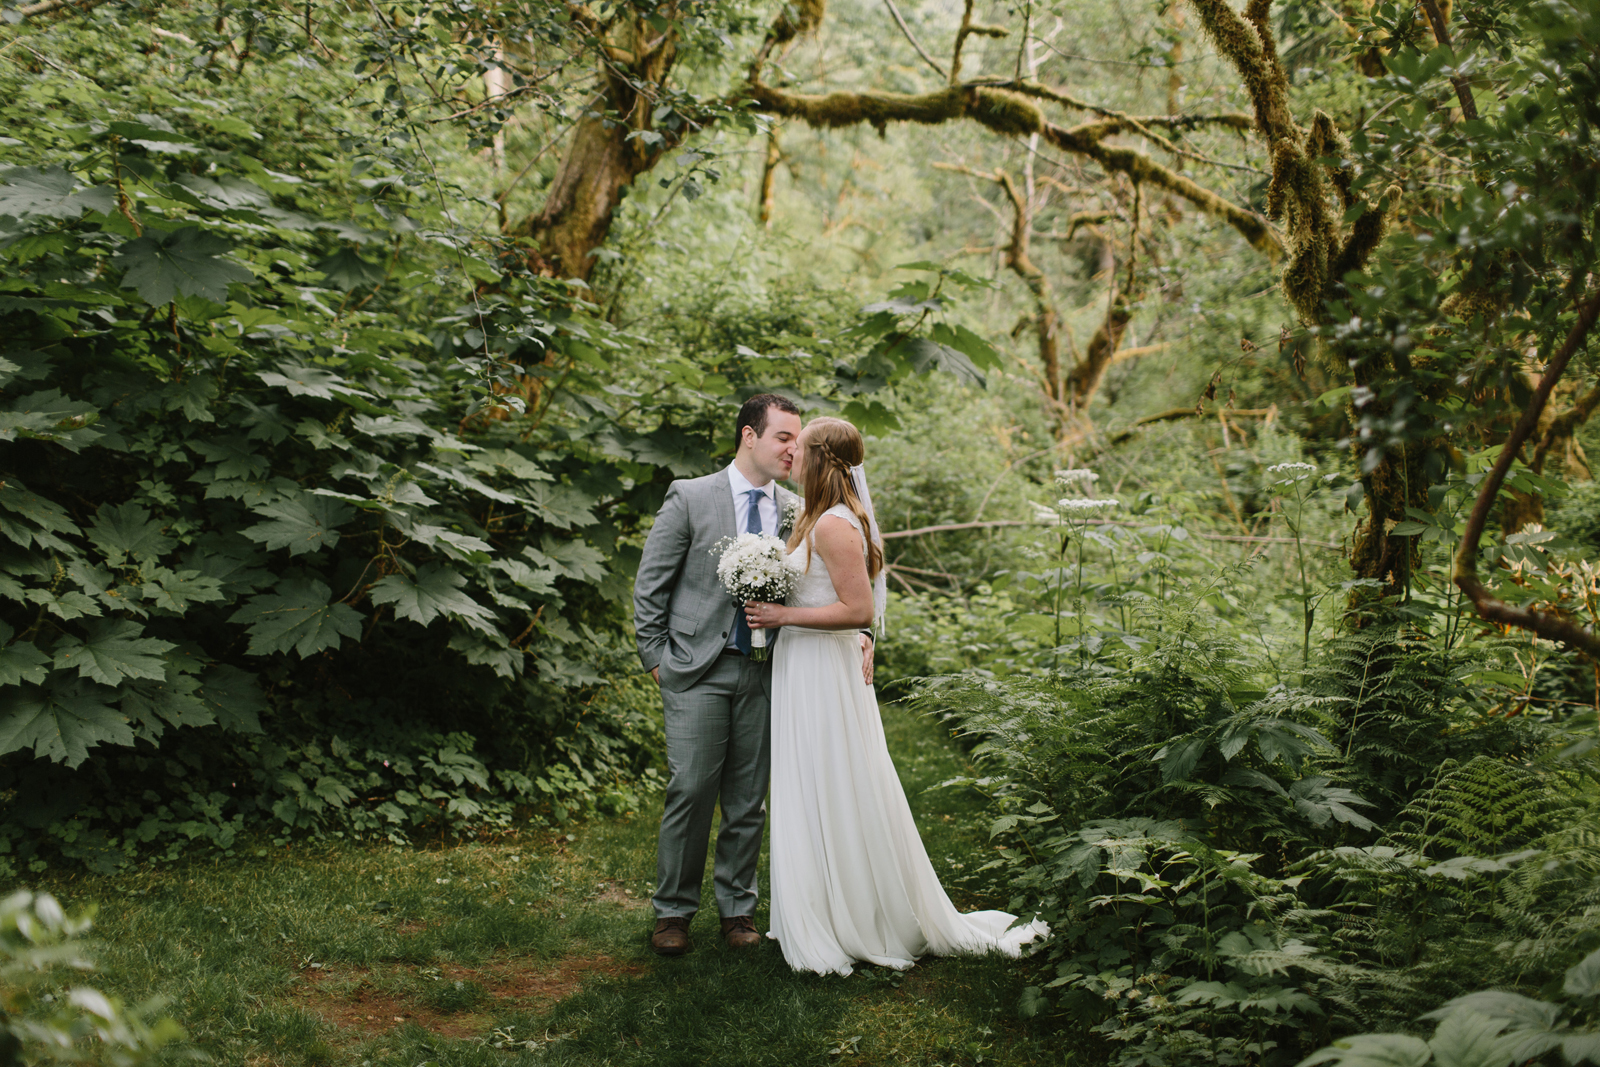 Bride and groom portrait at Bridal Veil Lakes in Corbett, Oregon